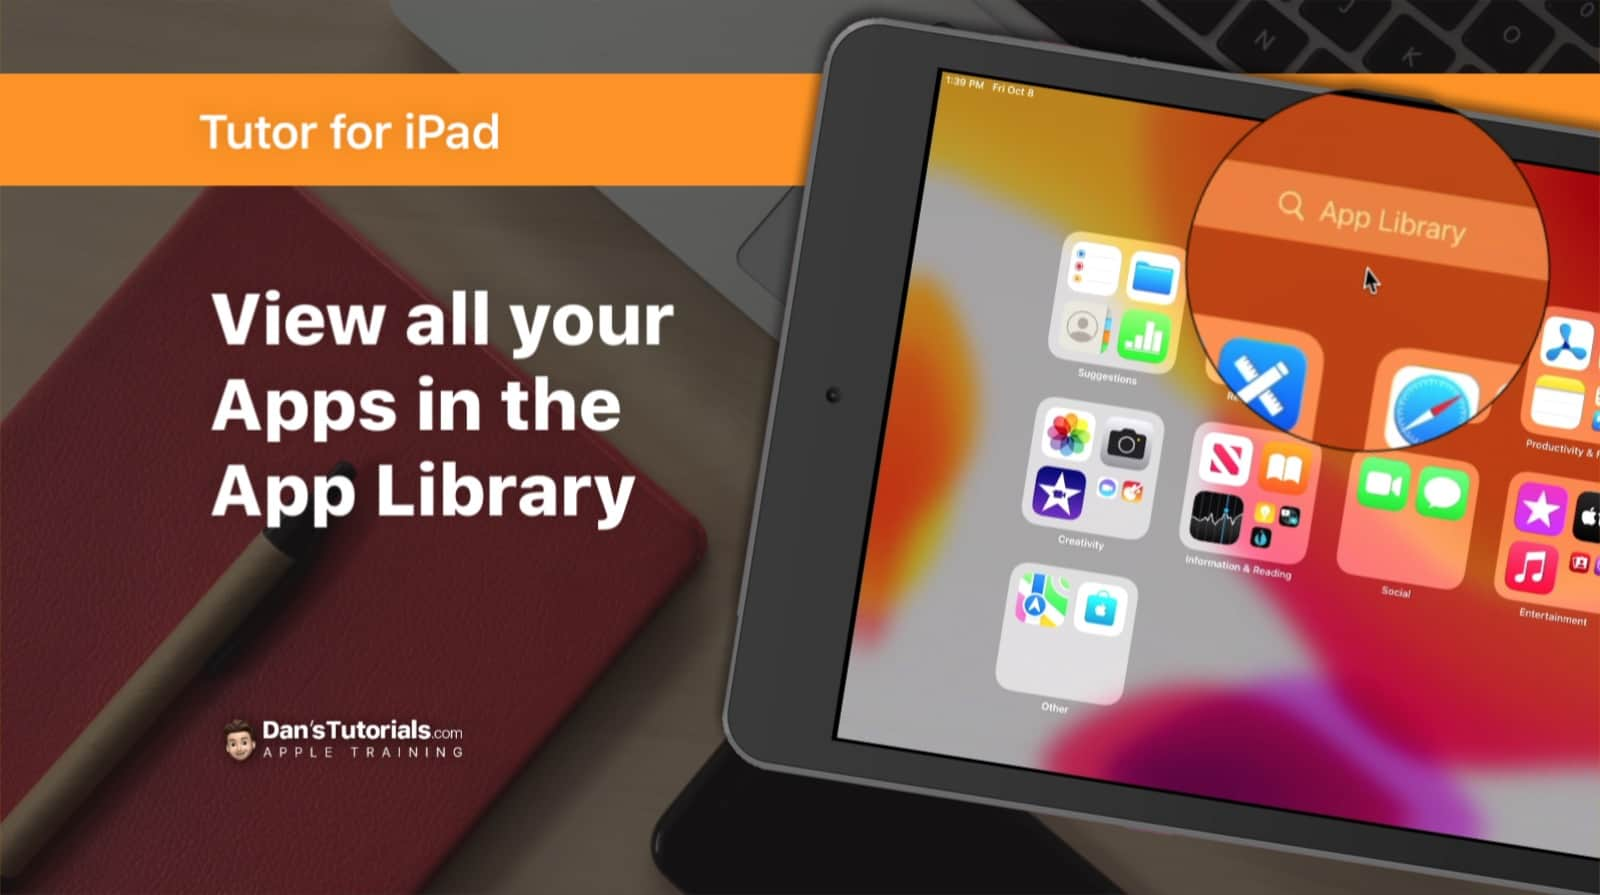 View All your Apps in the App Library on the iPad